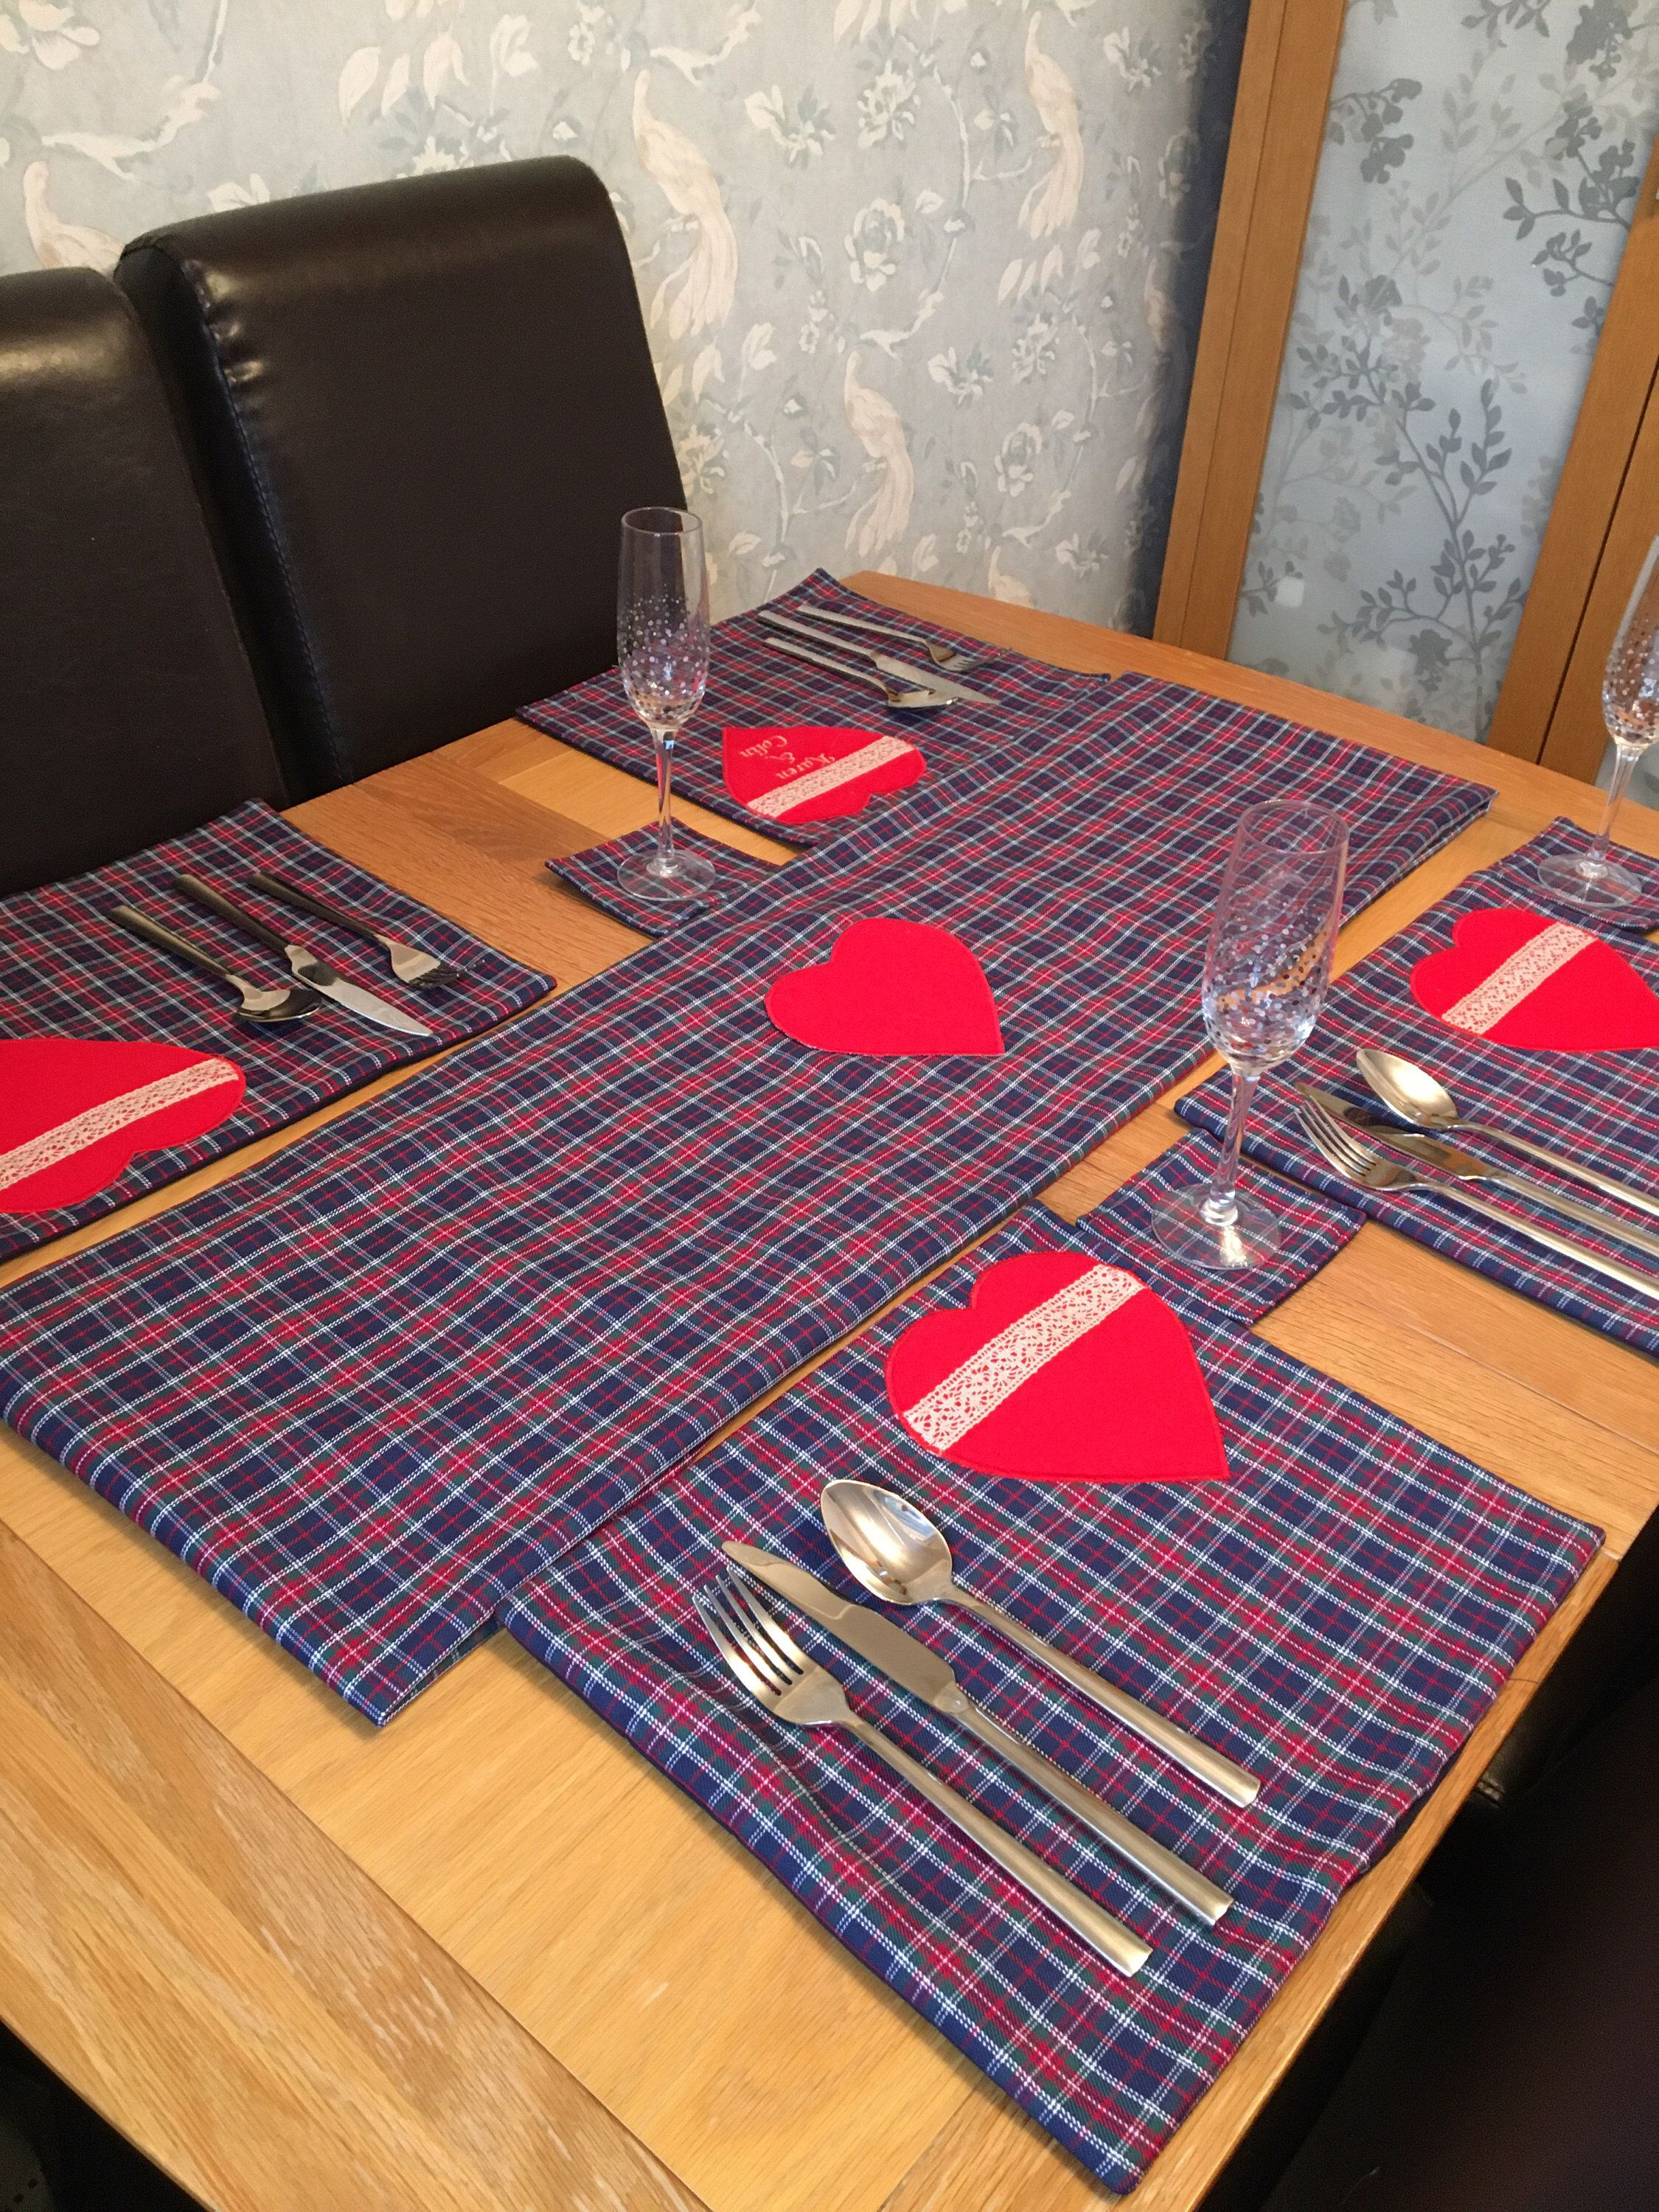 Placemats Coasters Table Runner Etsy Placemats Table Runner Size Table Runners